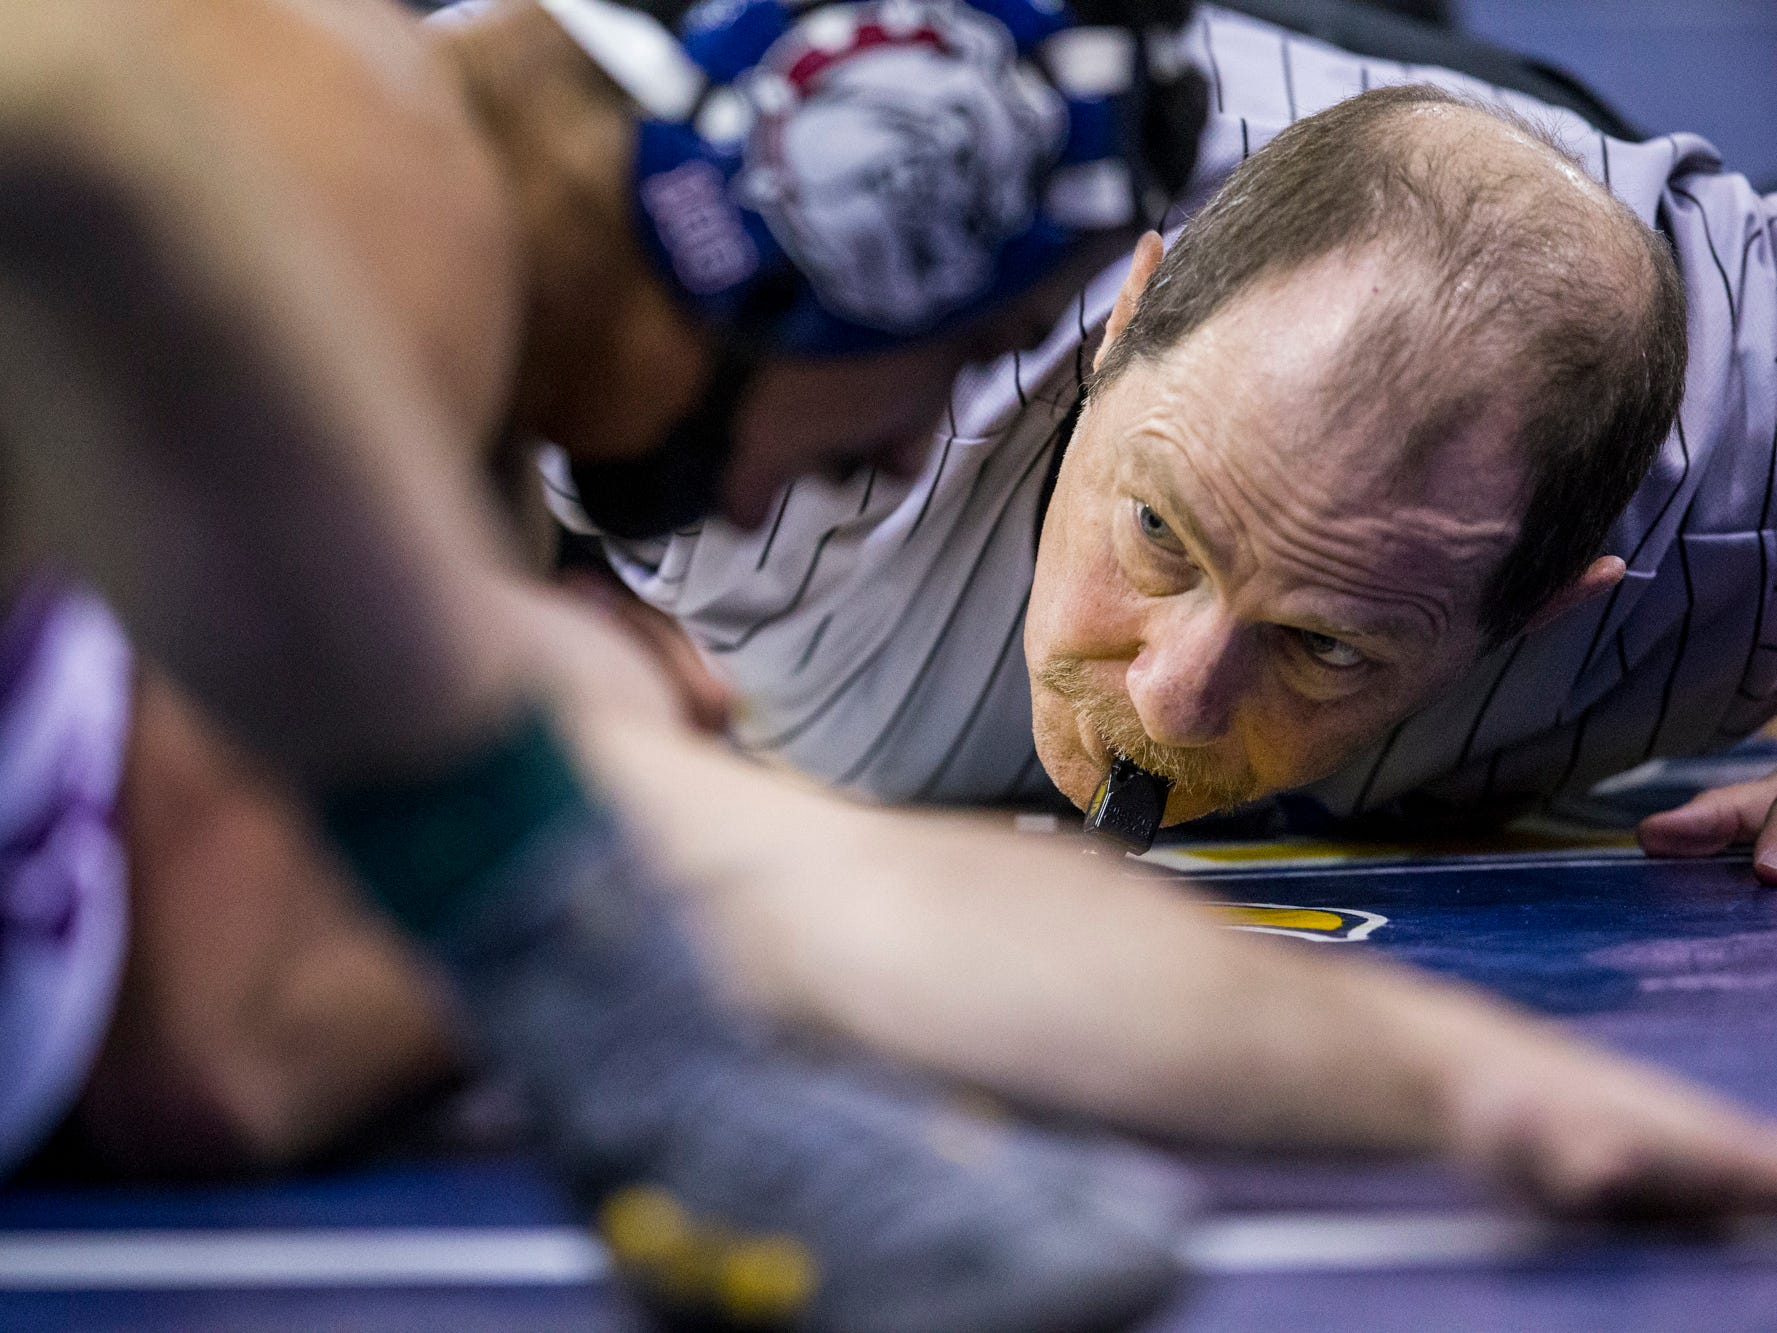 A referee watches the match between Millennium's Eathon Rider and Sierra Linda's Luis Pastoriza during the boys wrestling championship on Saturday, Feb. 9, 2019, at Prescott Valley Event Center in Prescott Valley, Ariz.